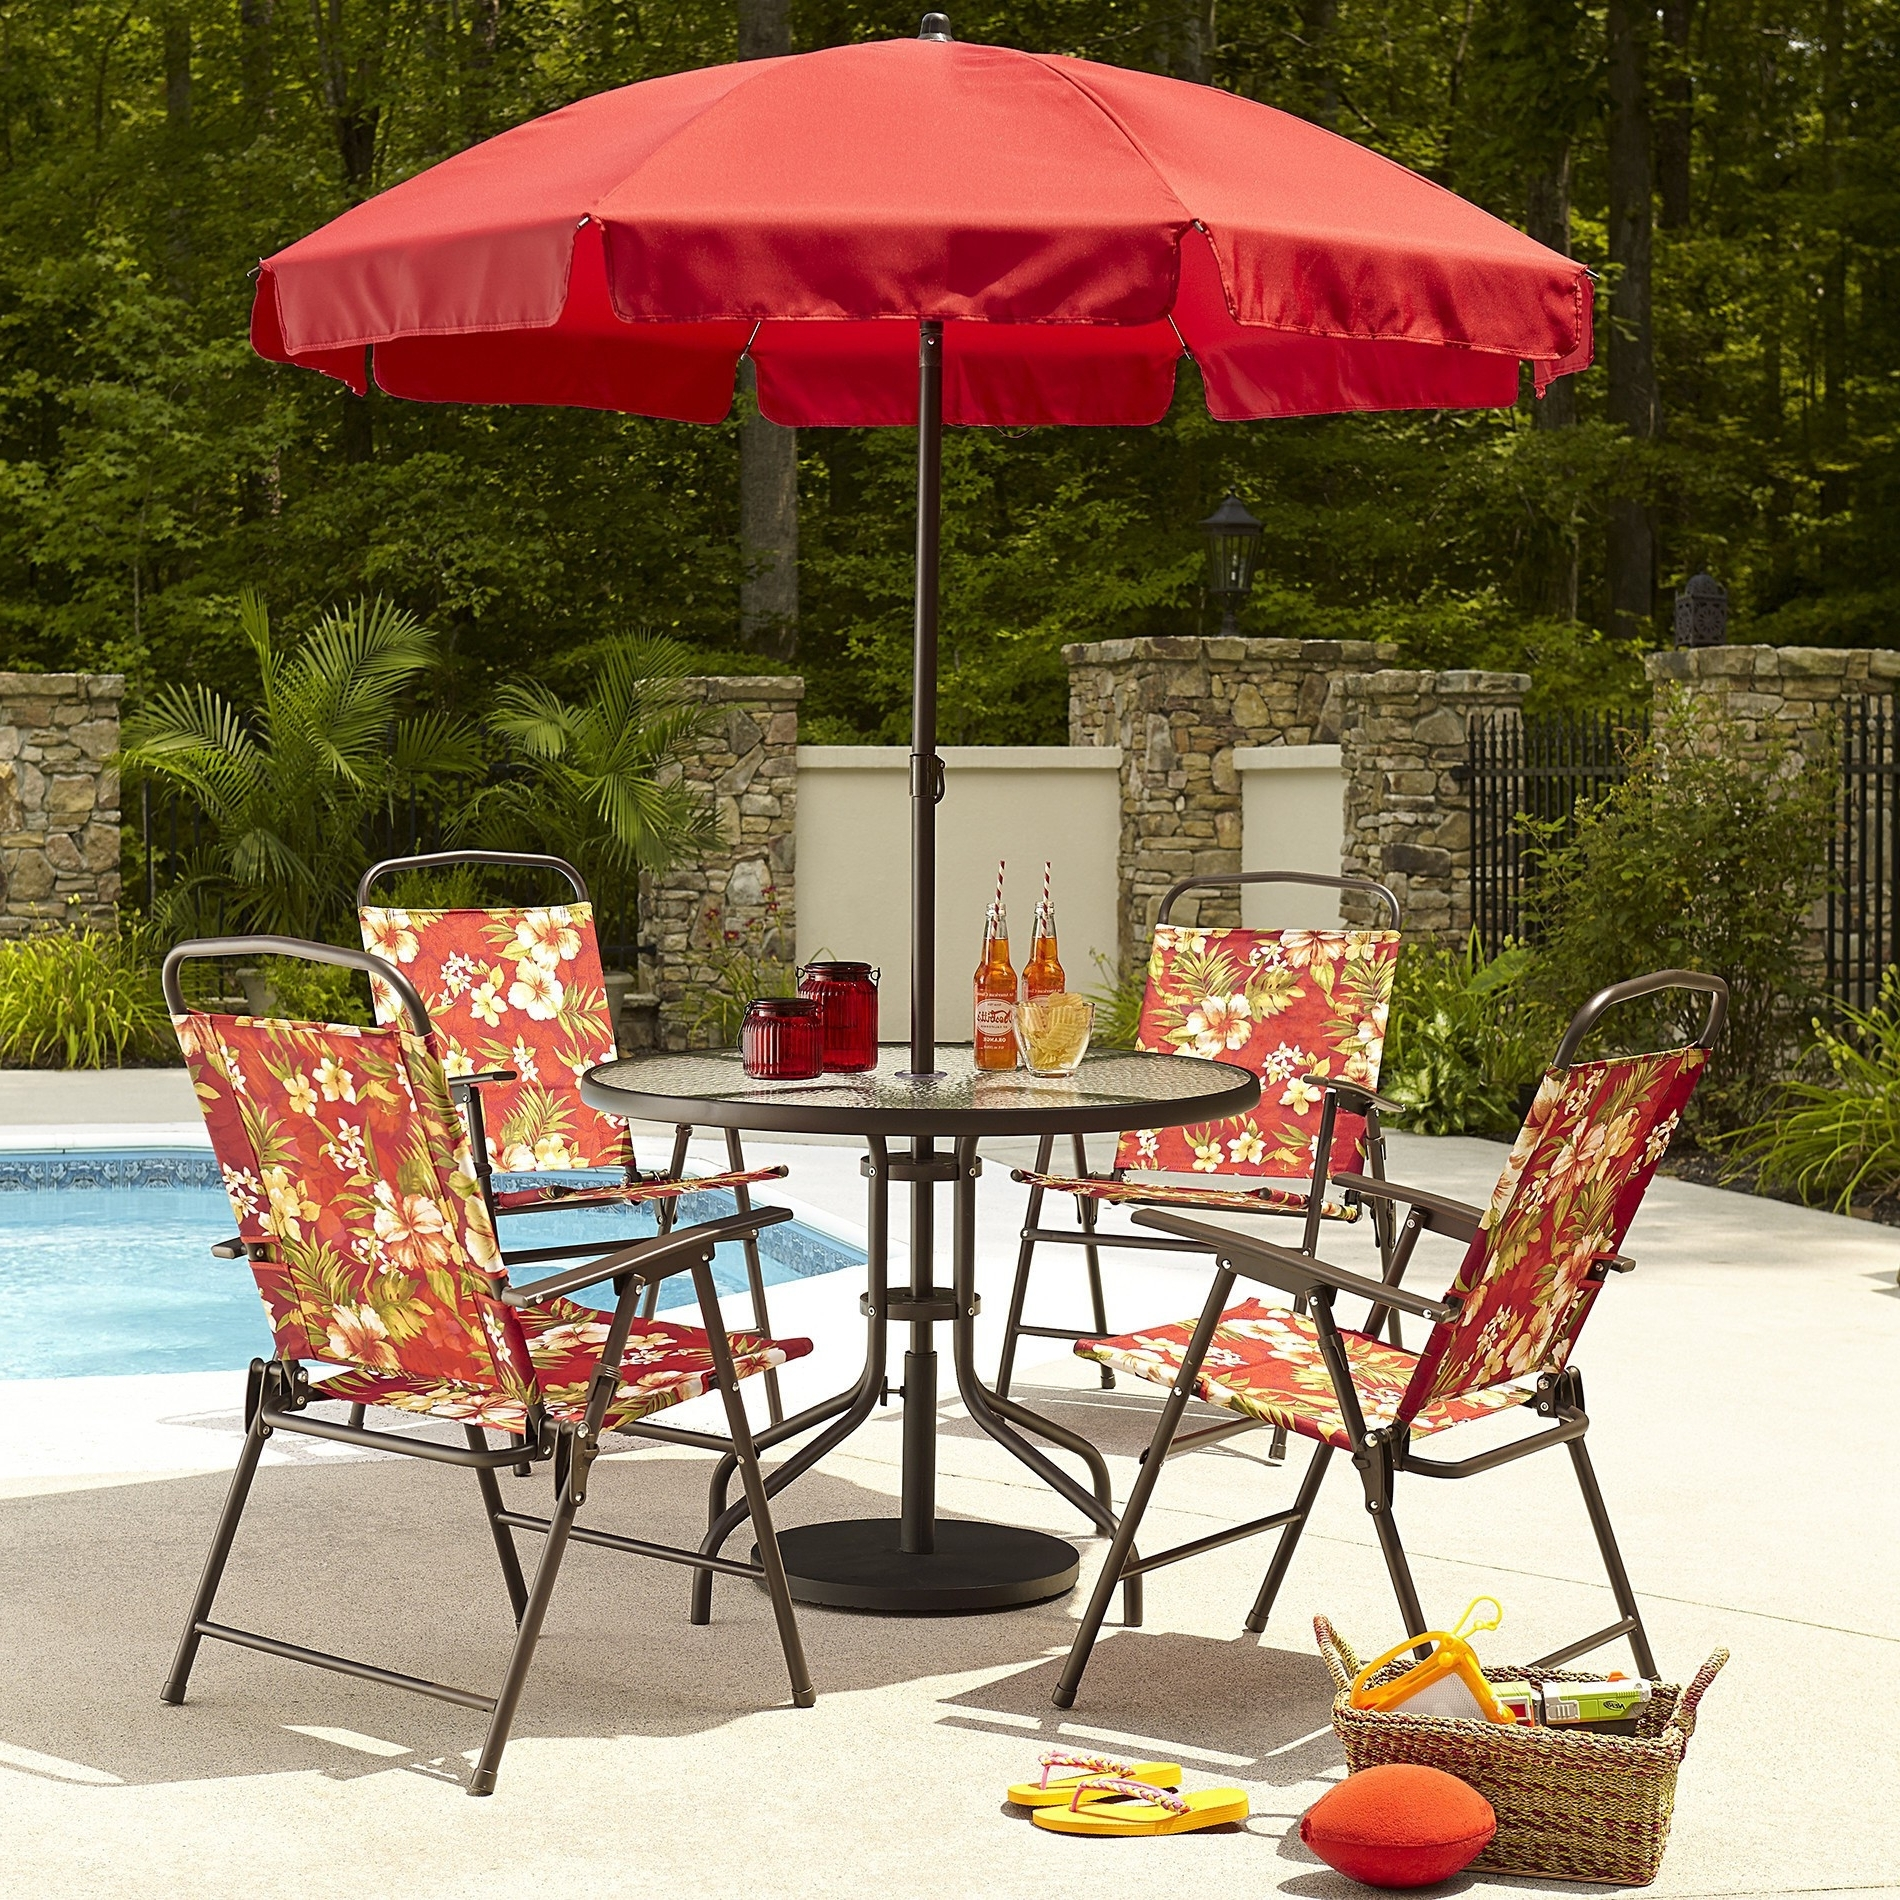 Patio Umbrellas From Costco In Most Recent Costco Outdoor Umbrellas Fresh Costco Beach Umbrella Beautiful (View 11 of 20)